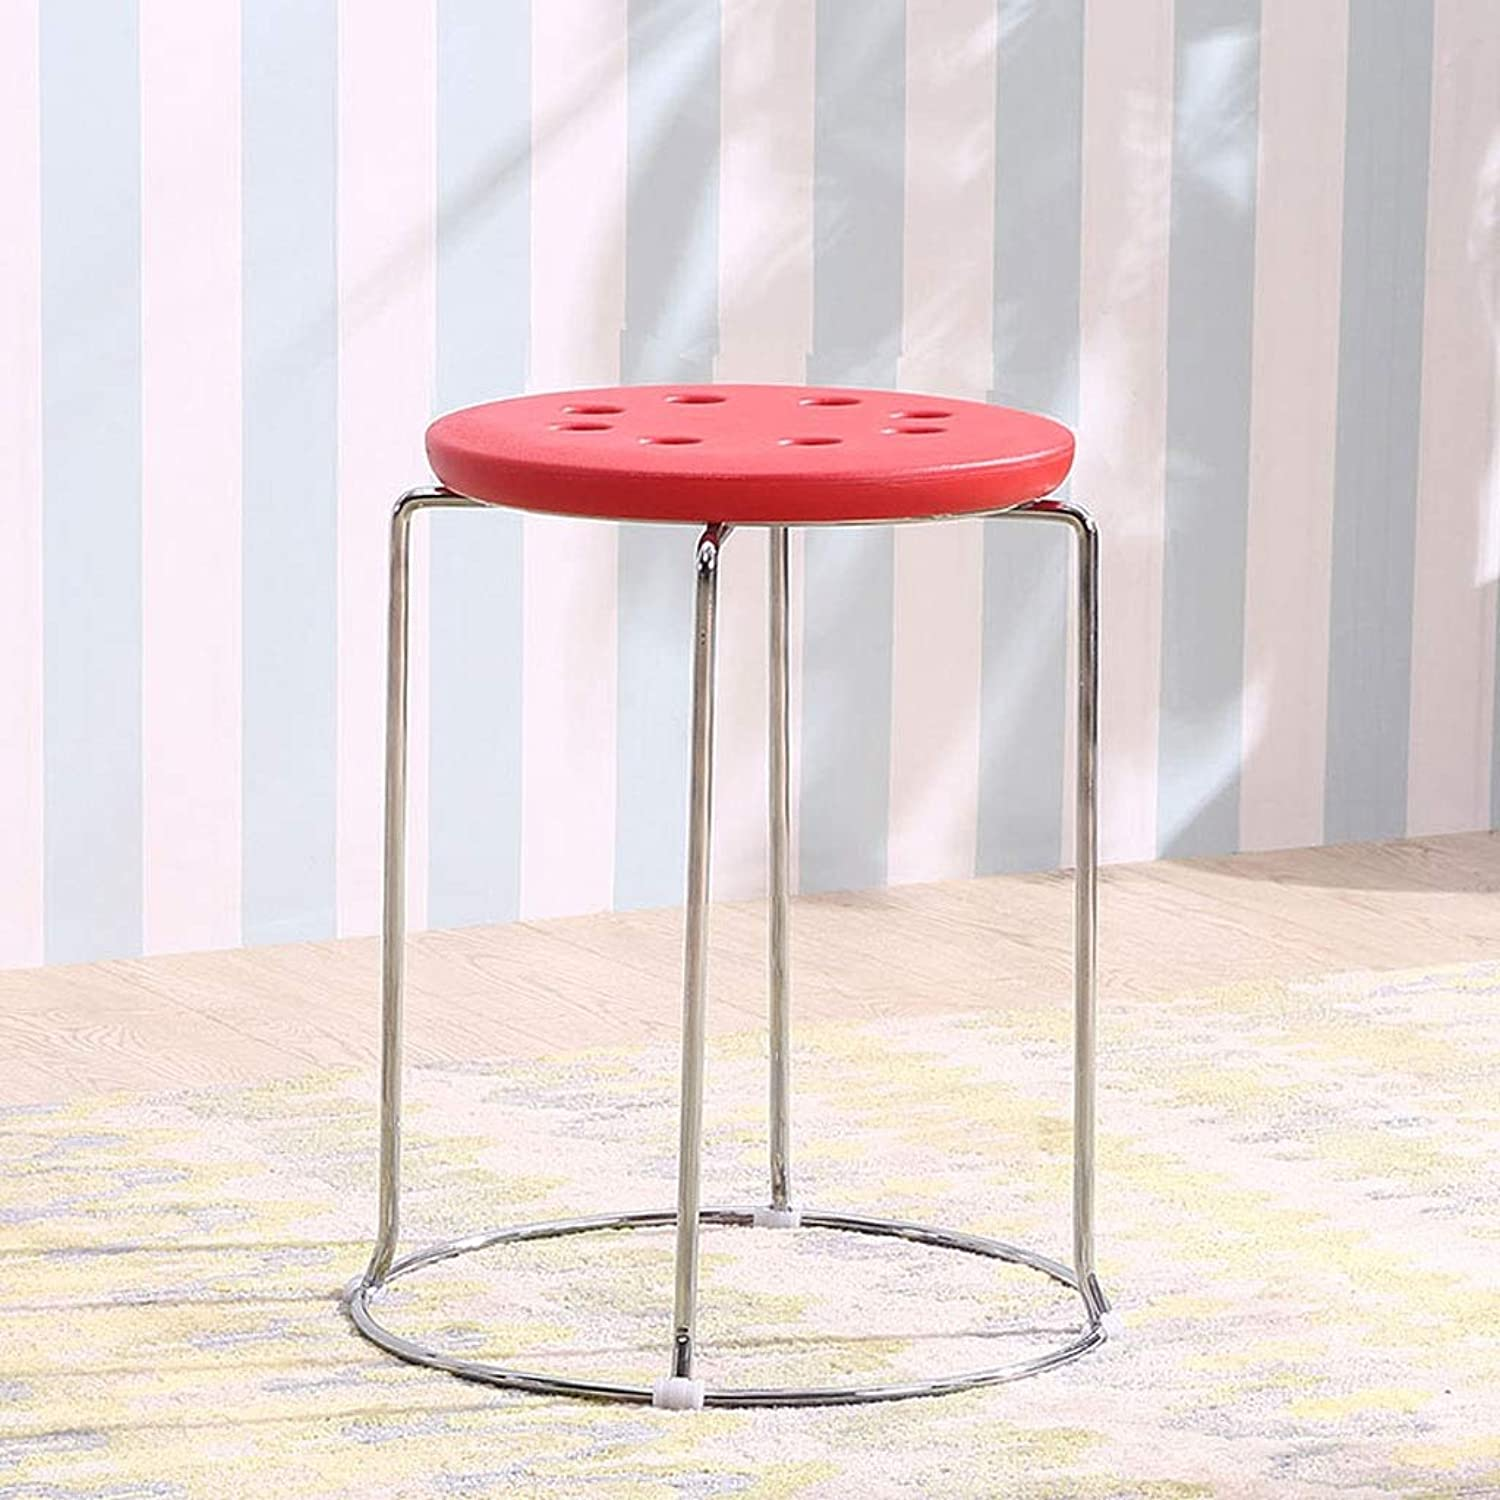 5d2a634d4964 Simple Red) (color 32cmX45cm - Chair Dining Chair, Room Living Stool ...